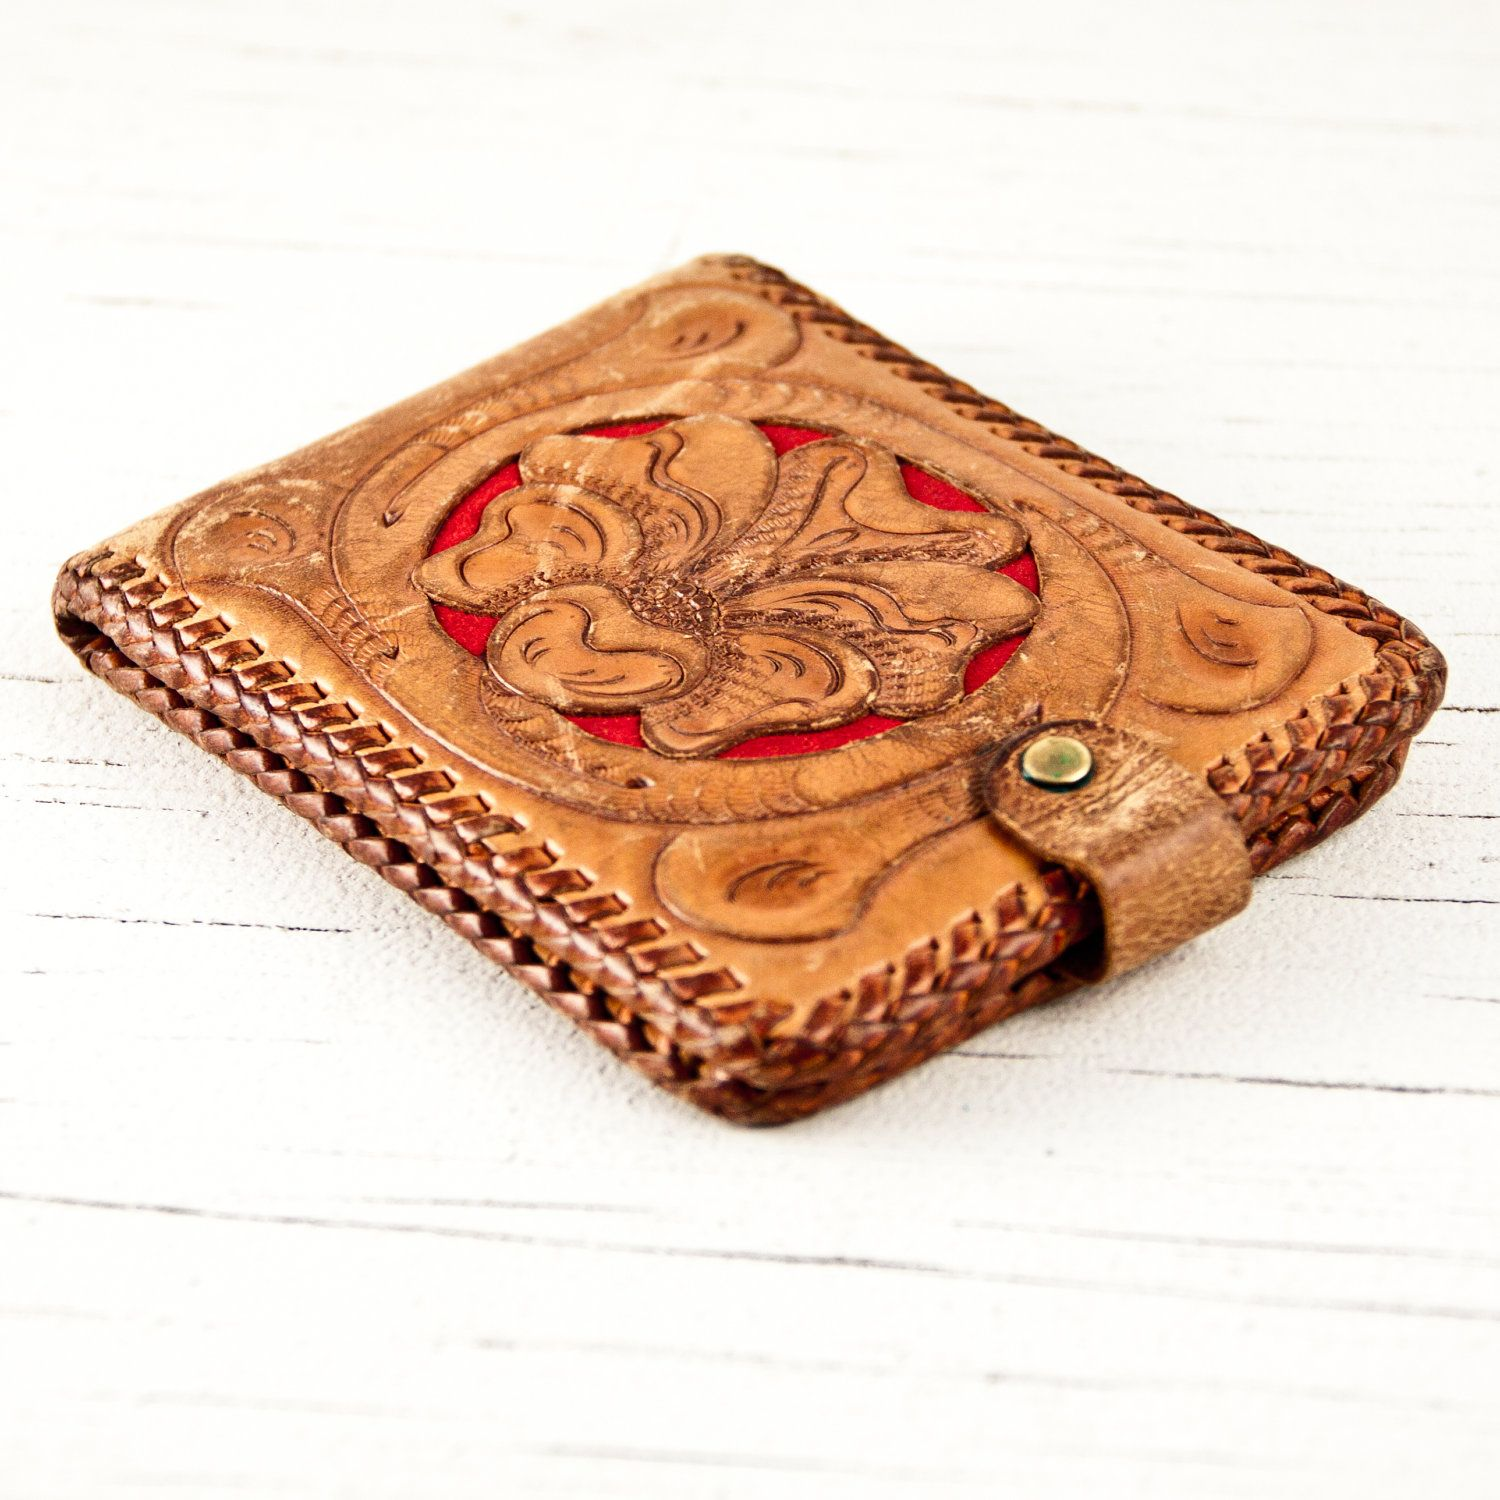 Vintage Wallet Hand Tooled Leather. $40.00, via Etsy.